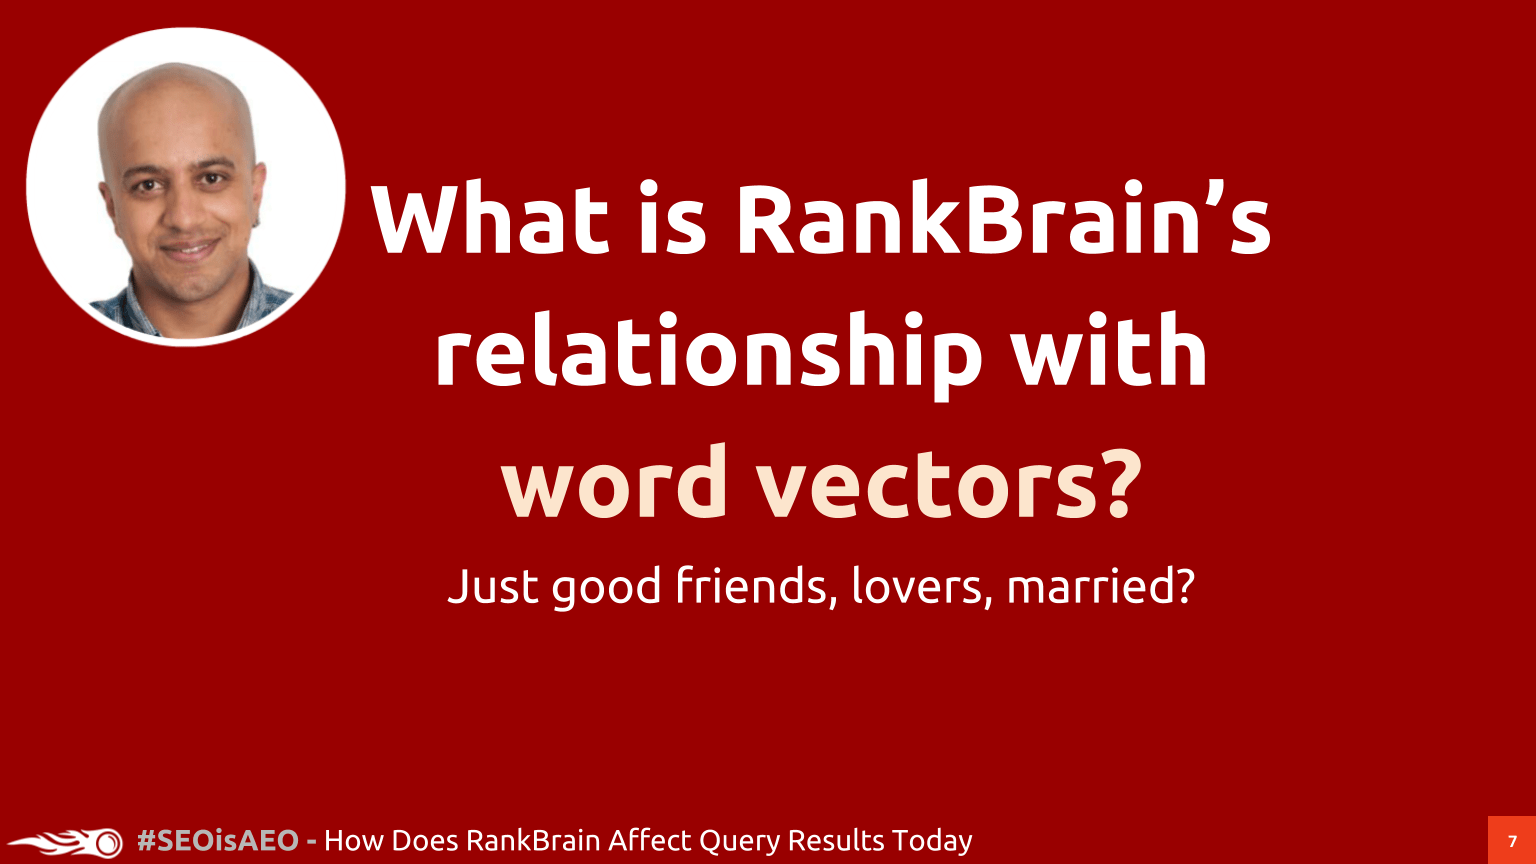 What is RankBrain's relationship with word vectors?